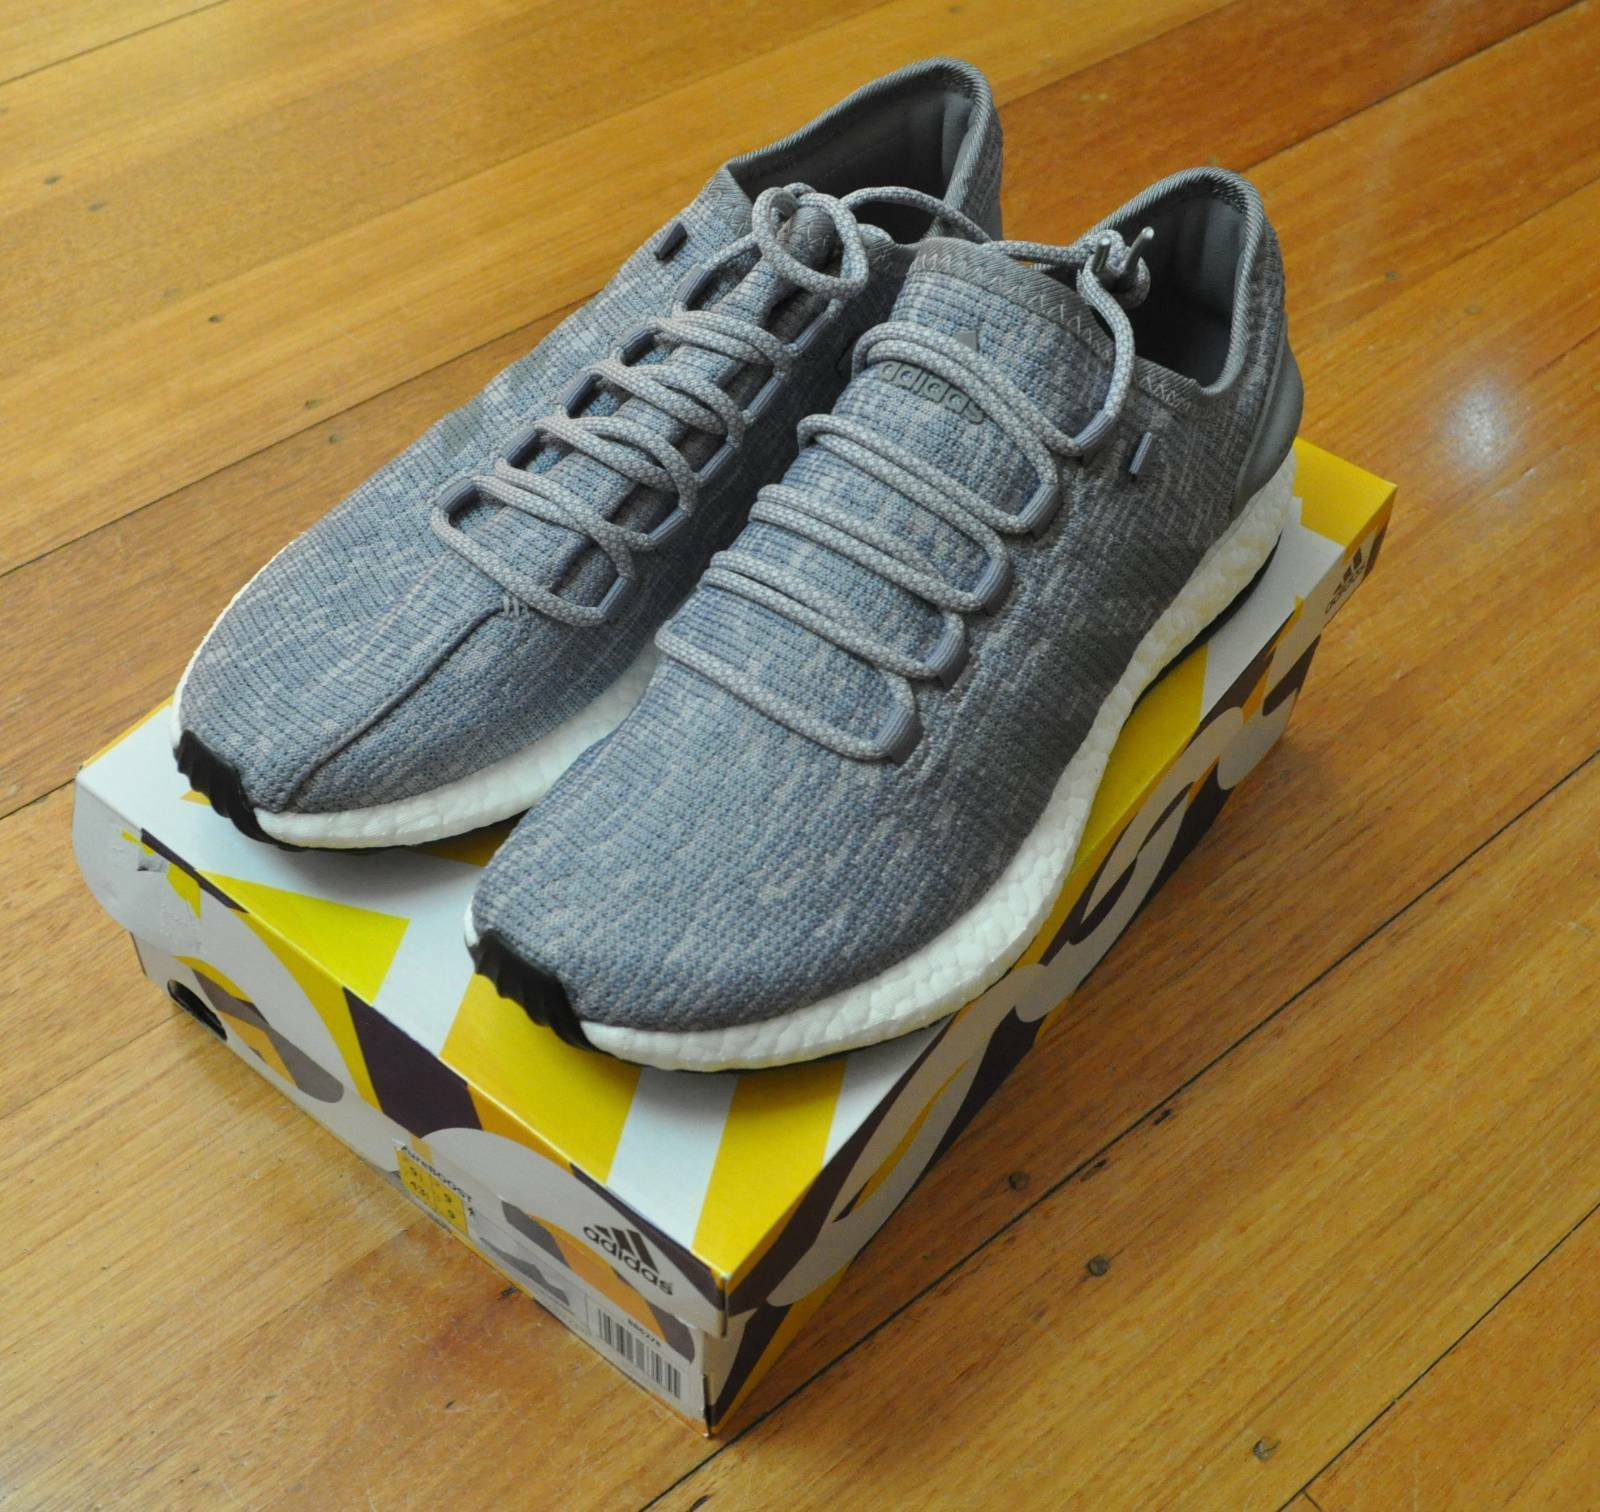 BNWT Adidas Pureboost Mens Sneakers shoes US 9.5 Grey New